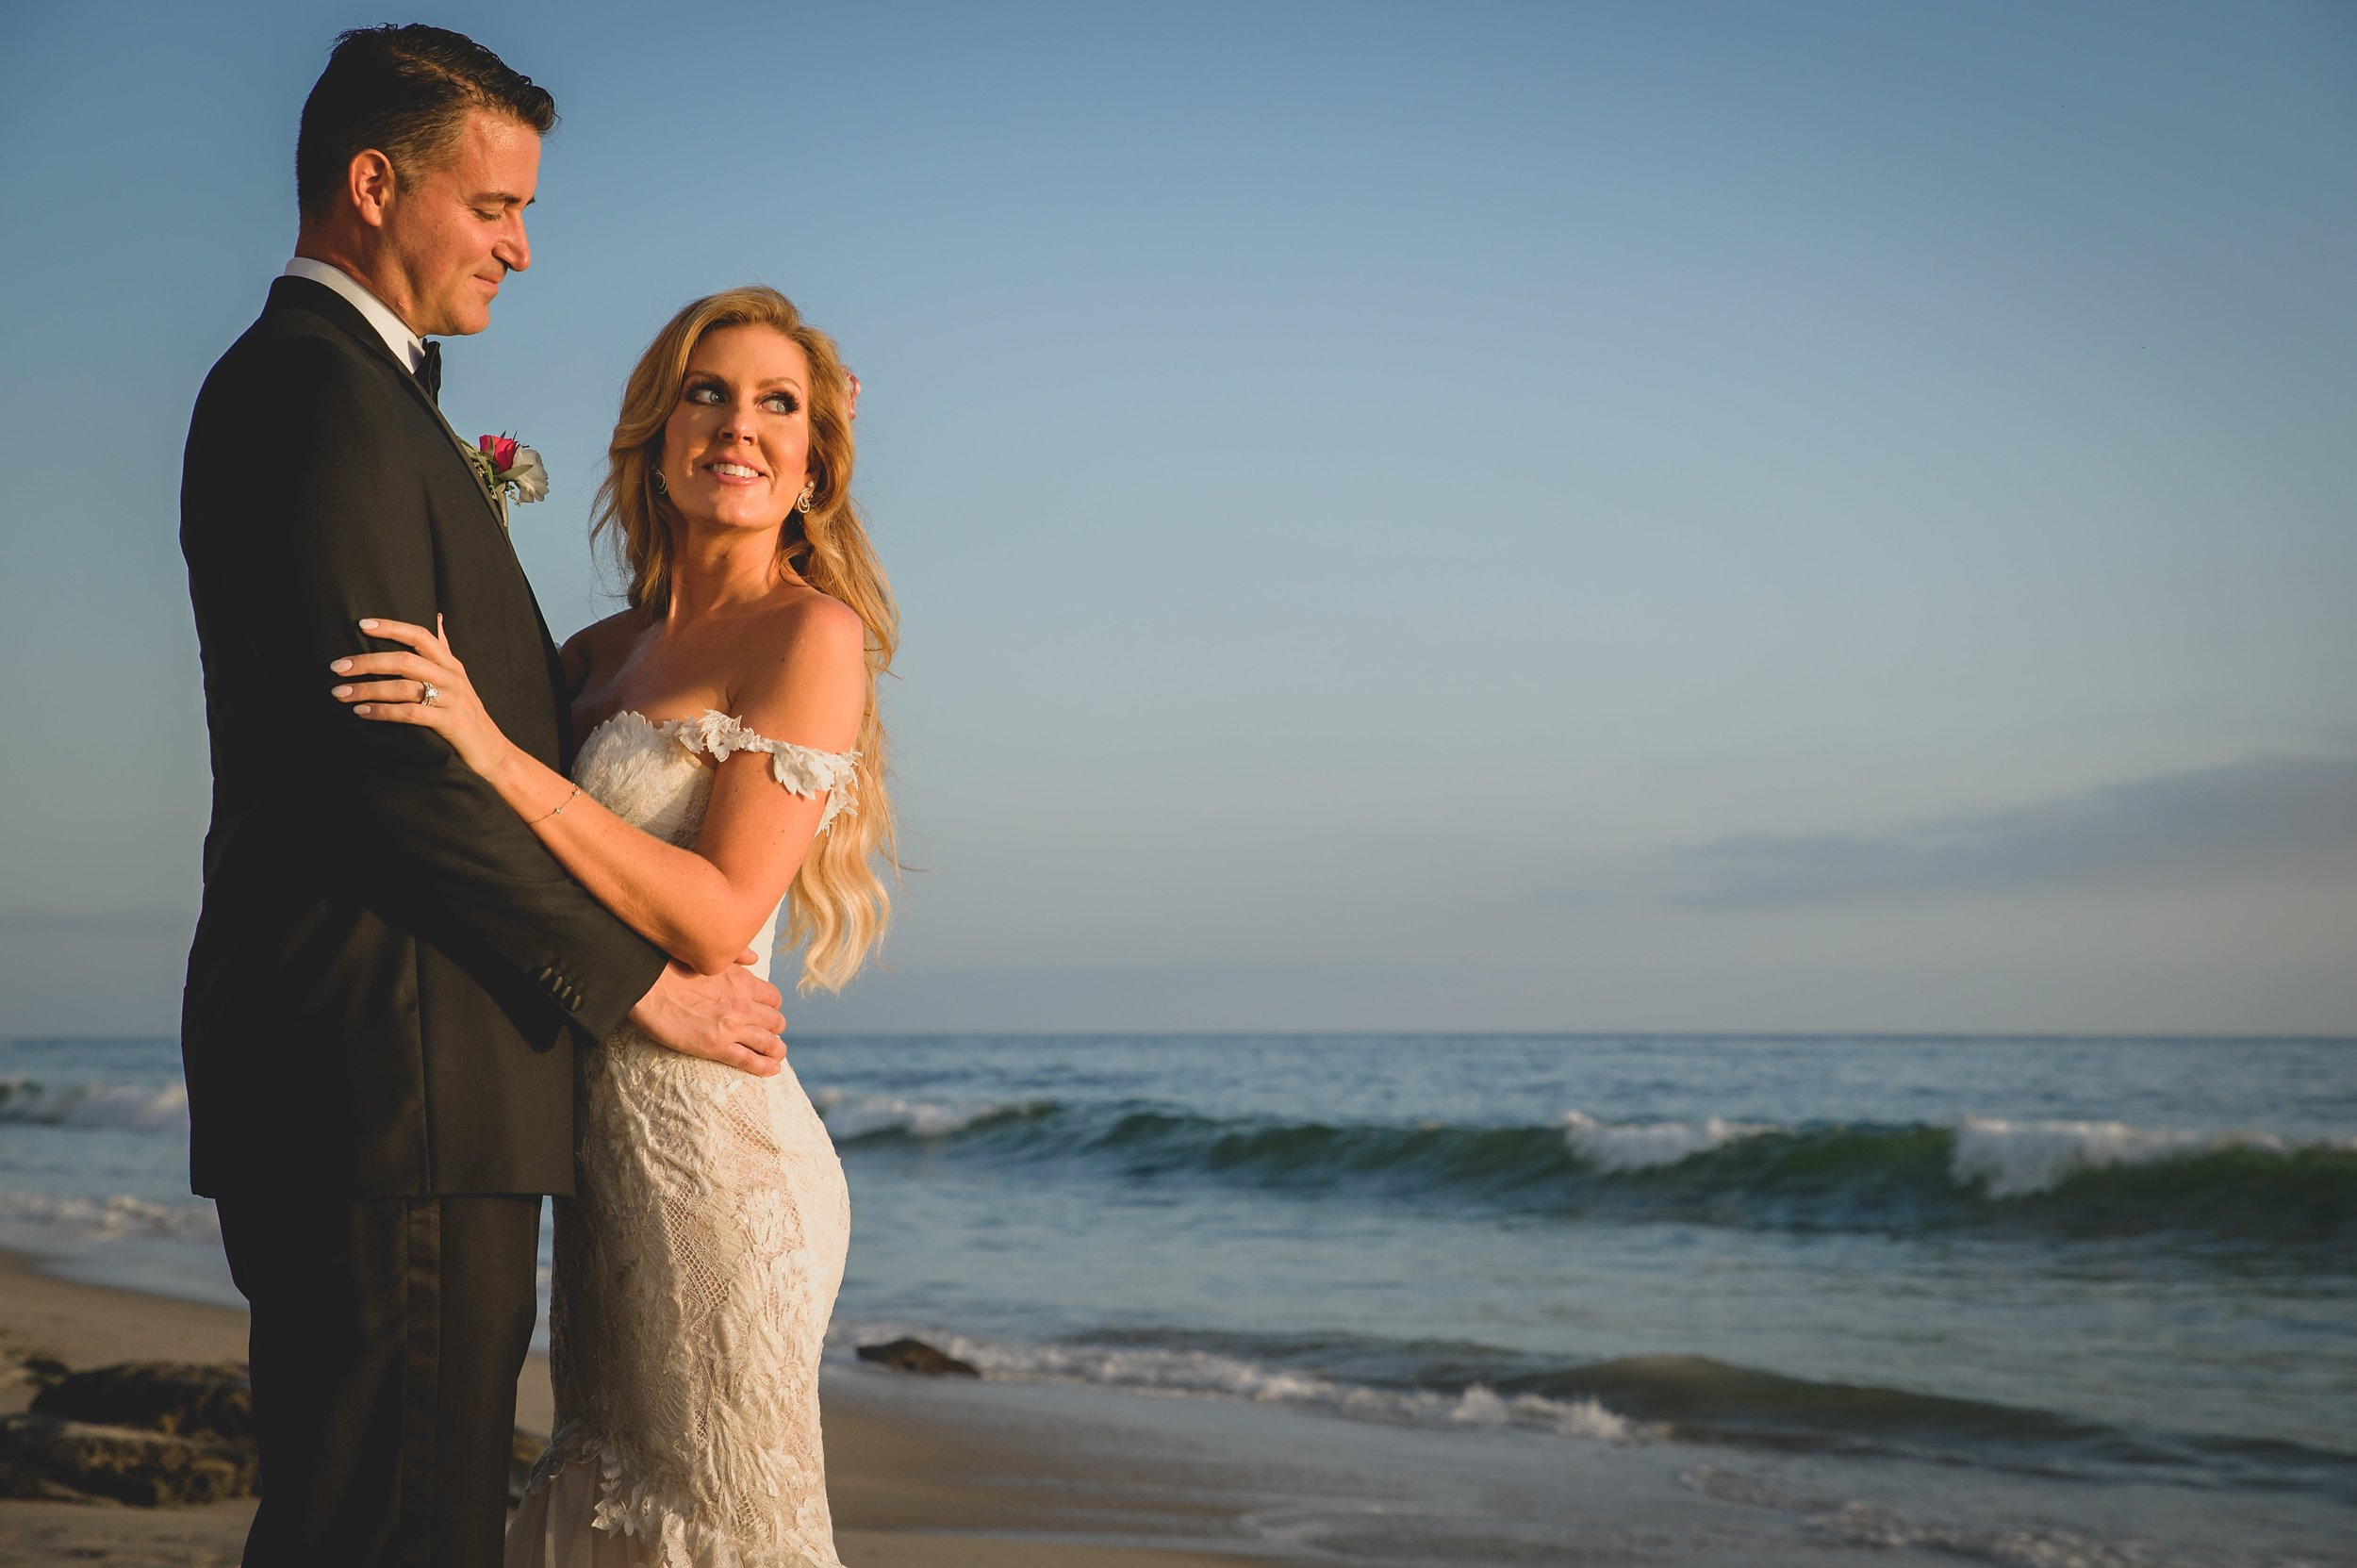 Wedding Photography Packages - Heritage Park, Dana Point, CA - Bride and groom standing on the beach with the ocean in the background and the sun beginning to set.